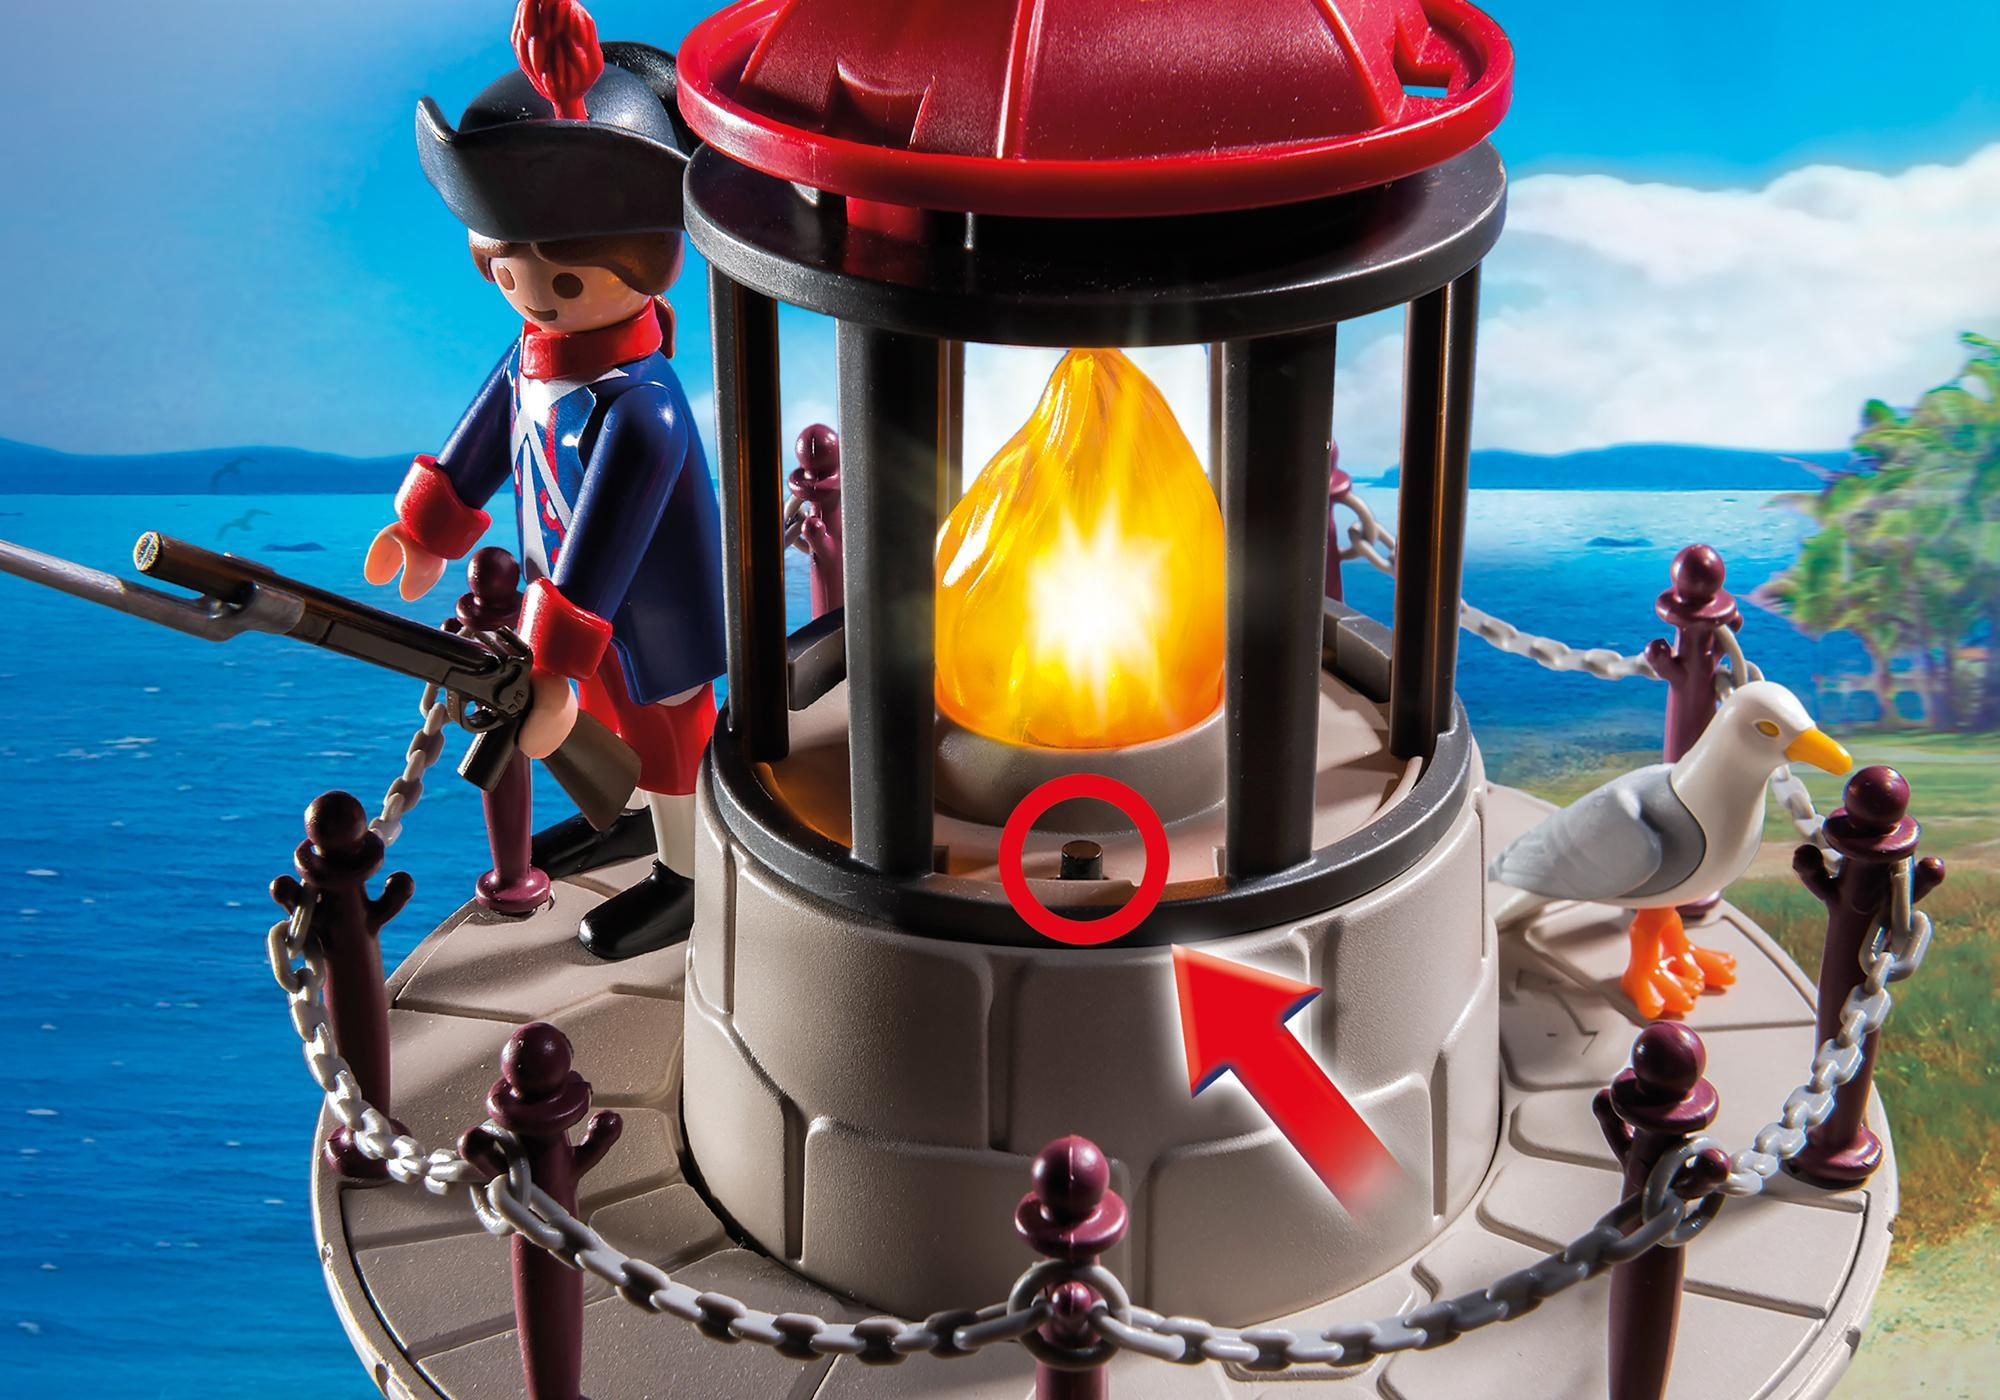 http://media.playmobil.com/i/playmobil/6680_product_extra1/Soldiers' Lookout with Beacon